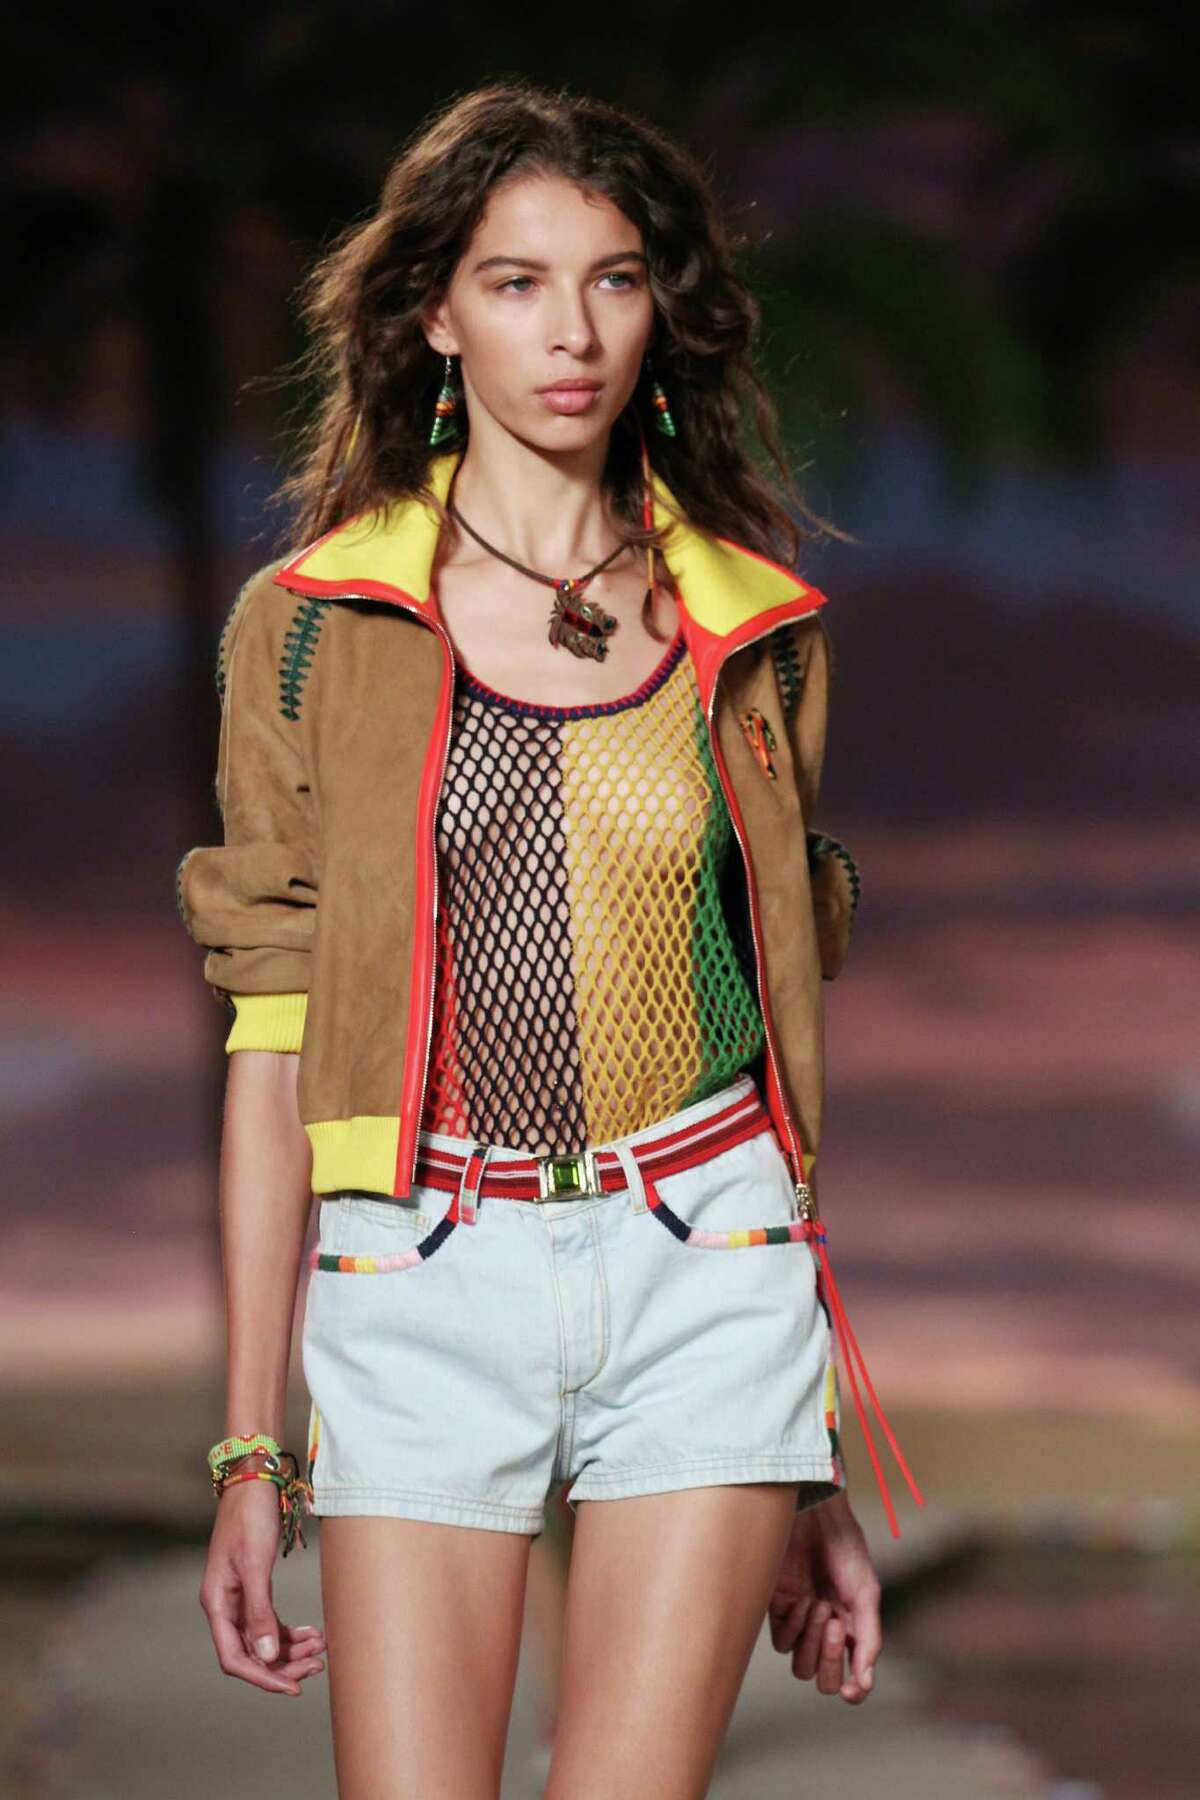 A model walks the runway during the Tommy Hilfiger Women's show as a part of Spring 2016 New York Fashion Week at Pier 36 on September 14, 2015 in New York City. (Photo by Antonio de Moraes Barros Filho/FilmMagic)